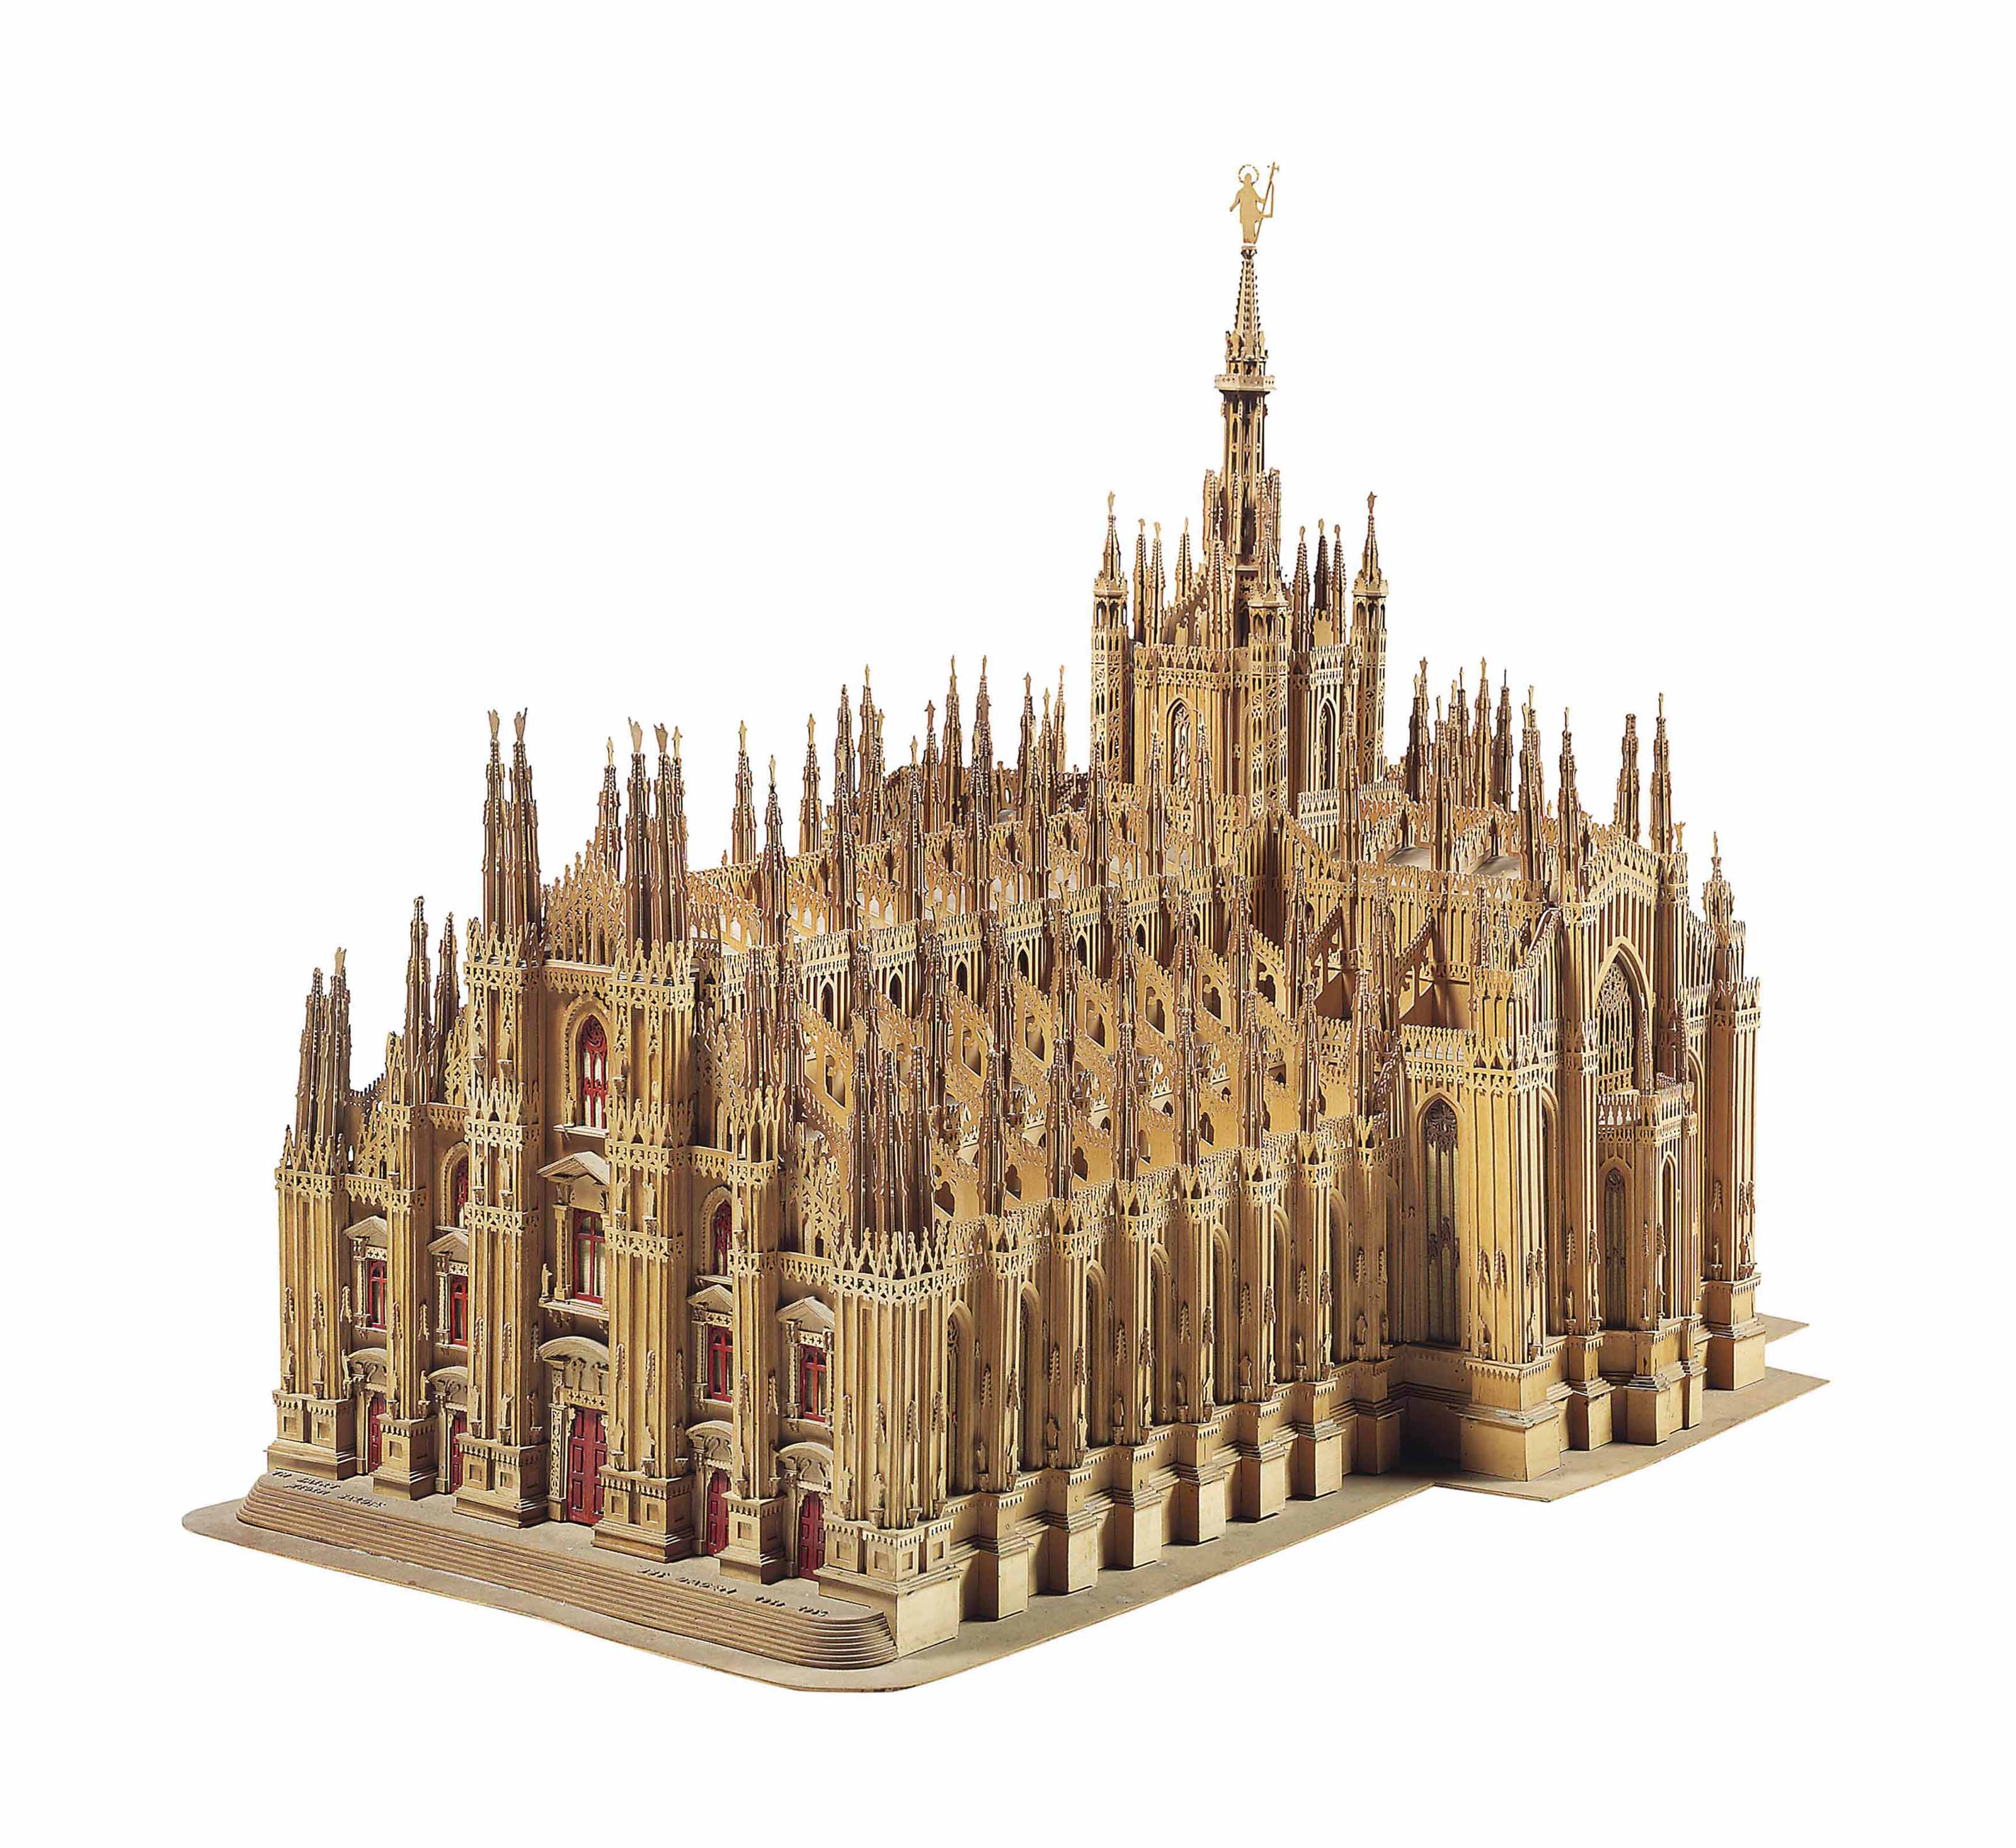 A BELGIAN ARCHITECTURAL MODEL